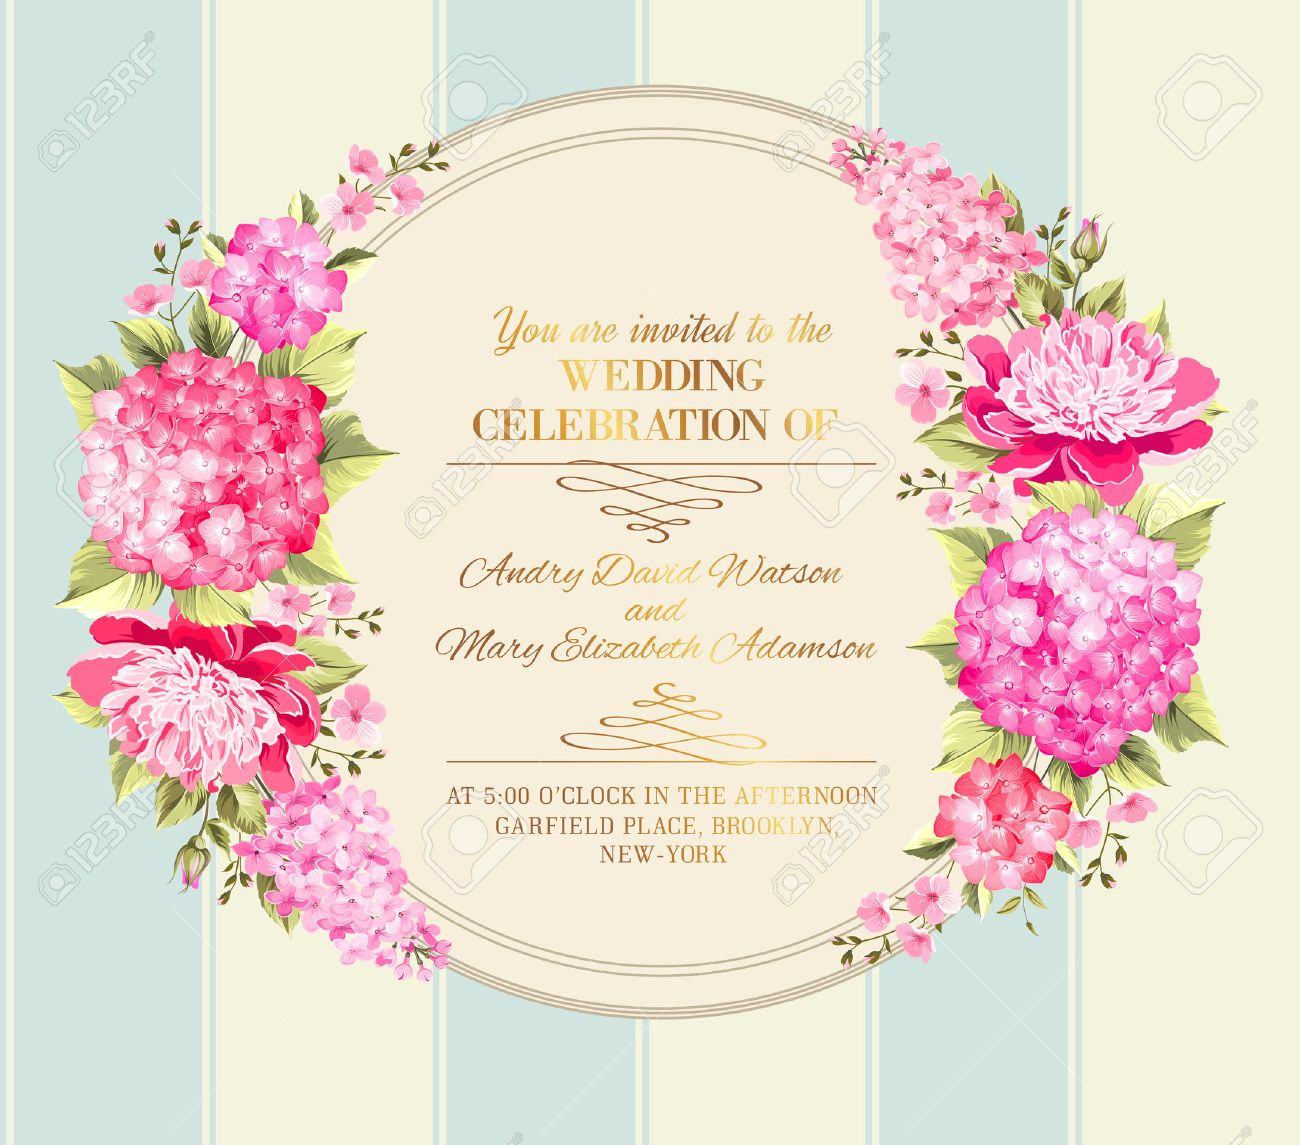 Wedding Invitation Card With Pink Flowers. Vintage Wedding ...